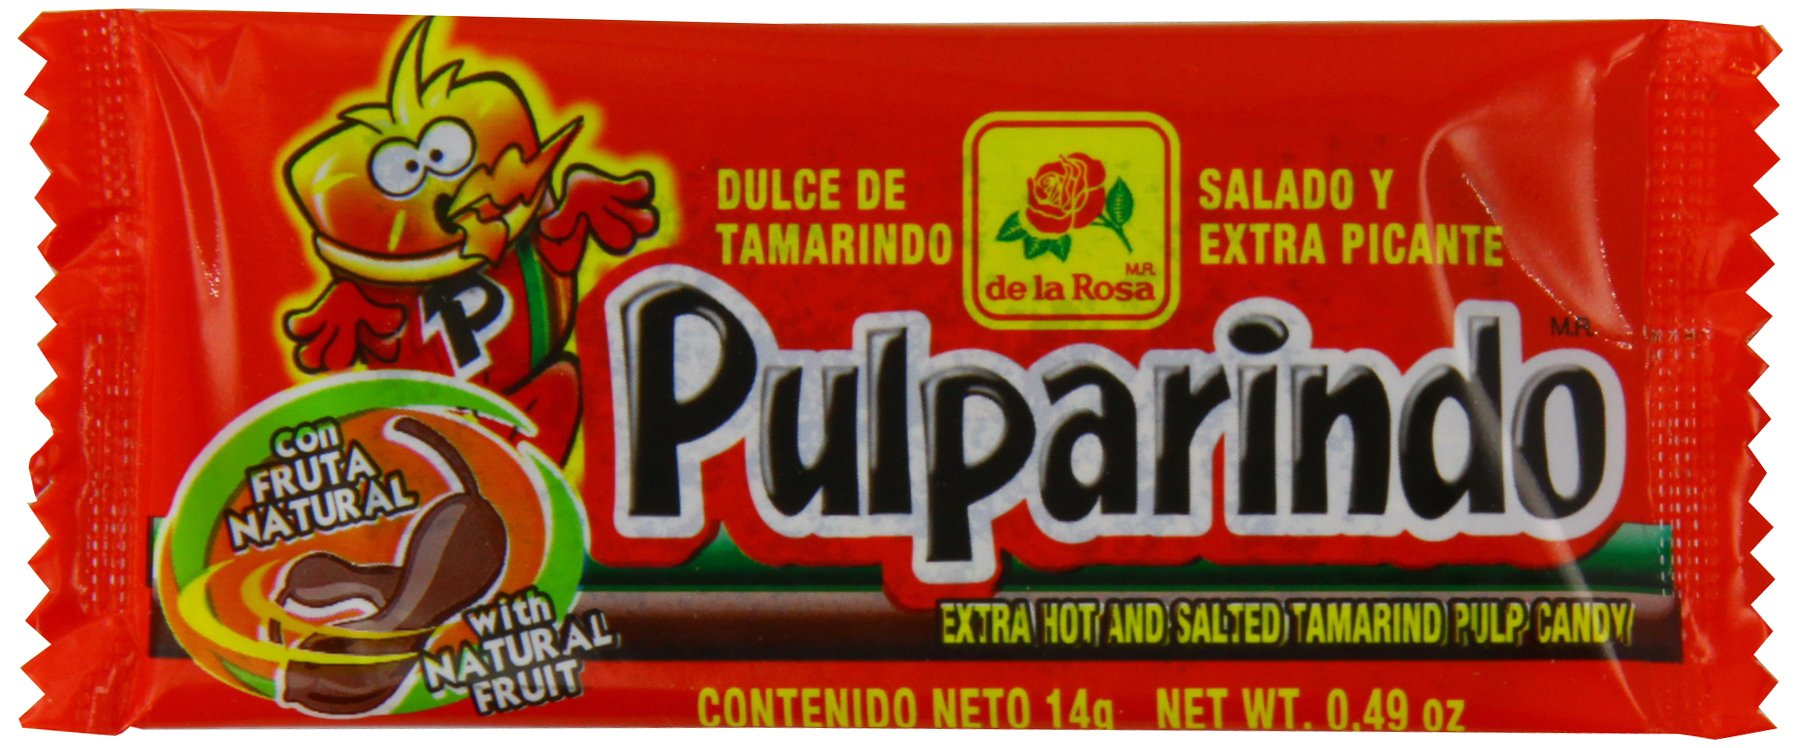 Pulparindo Extra Hot and Salted Tamarind Pulp Candy - 20 ct